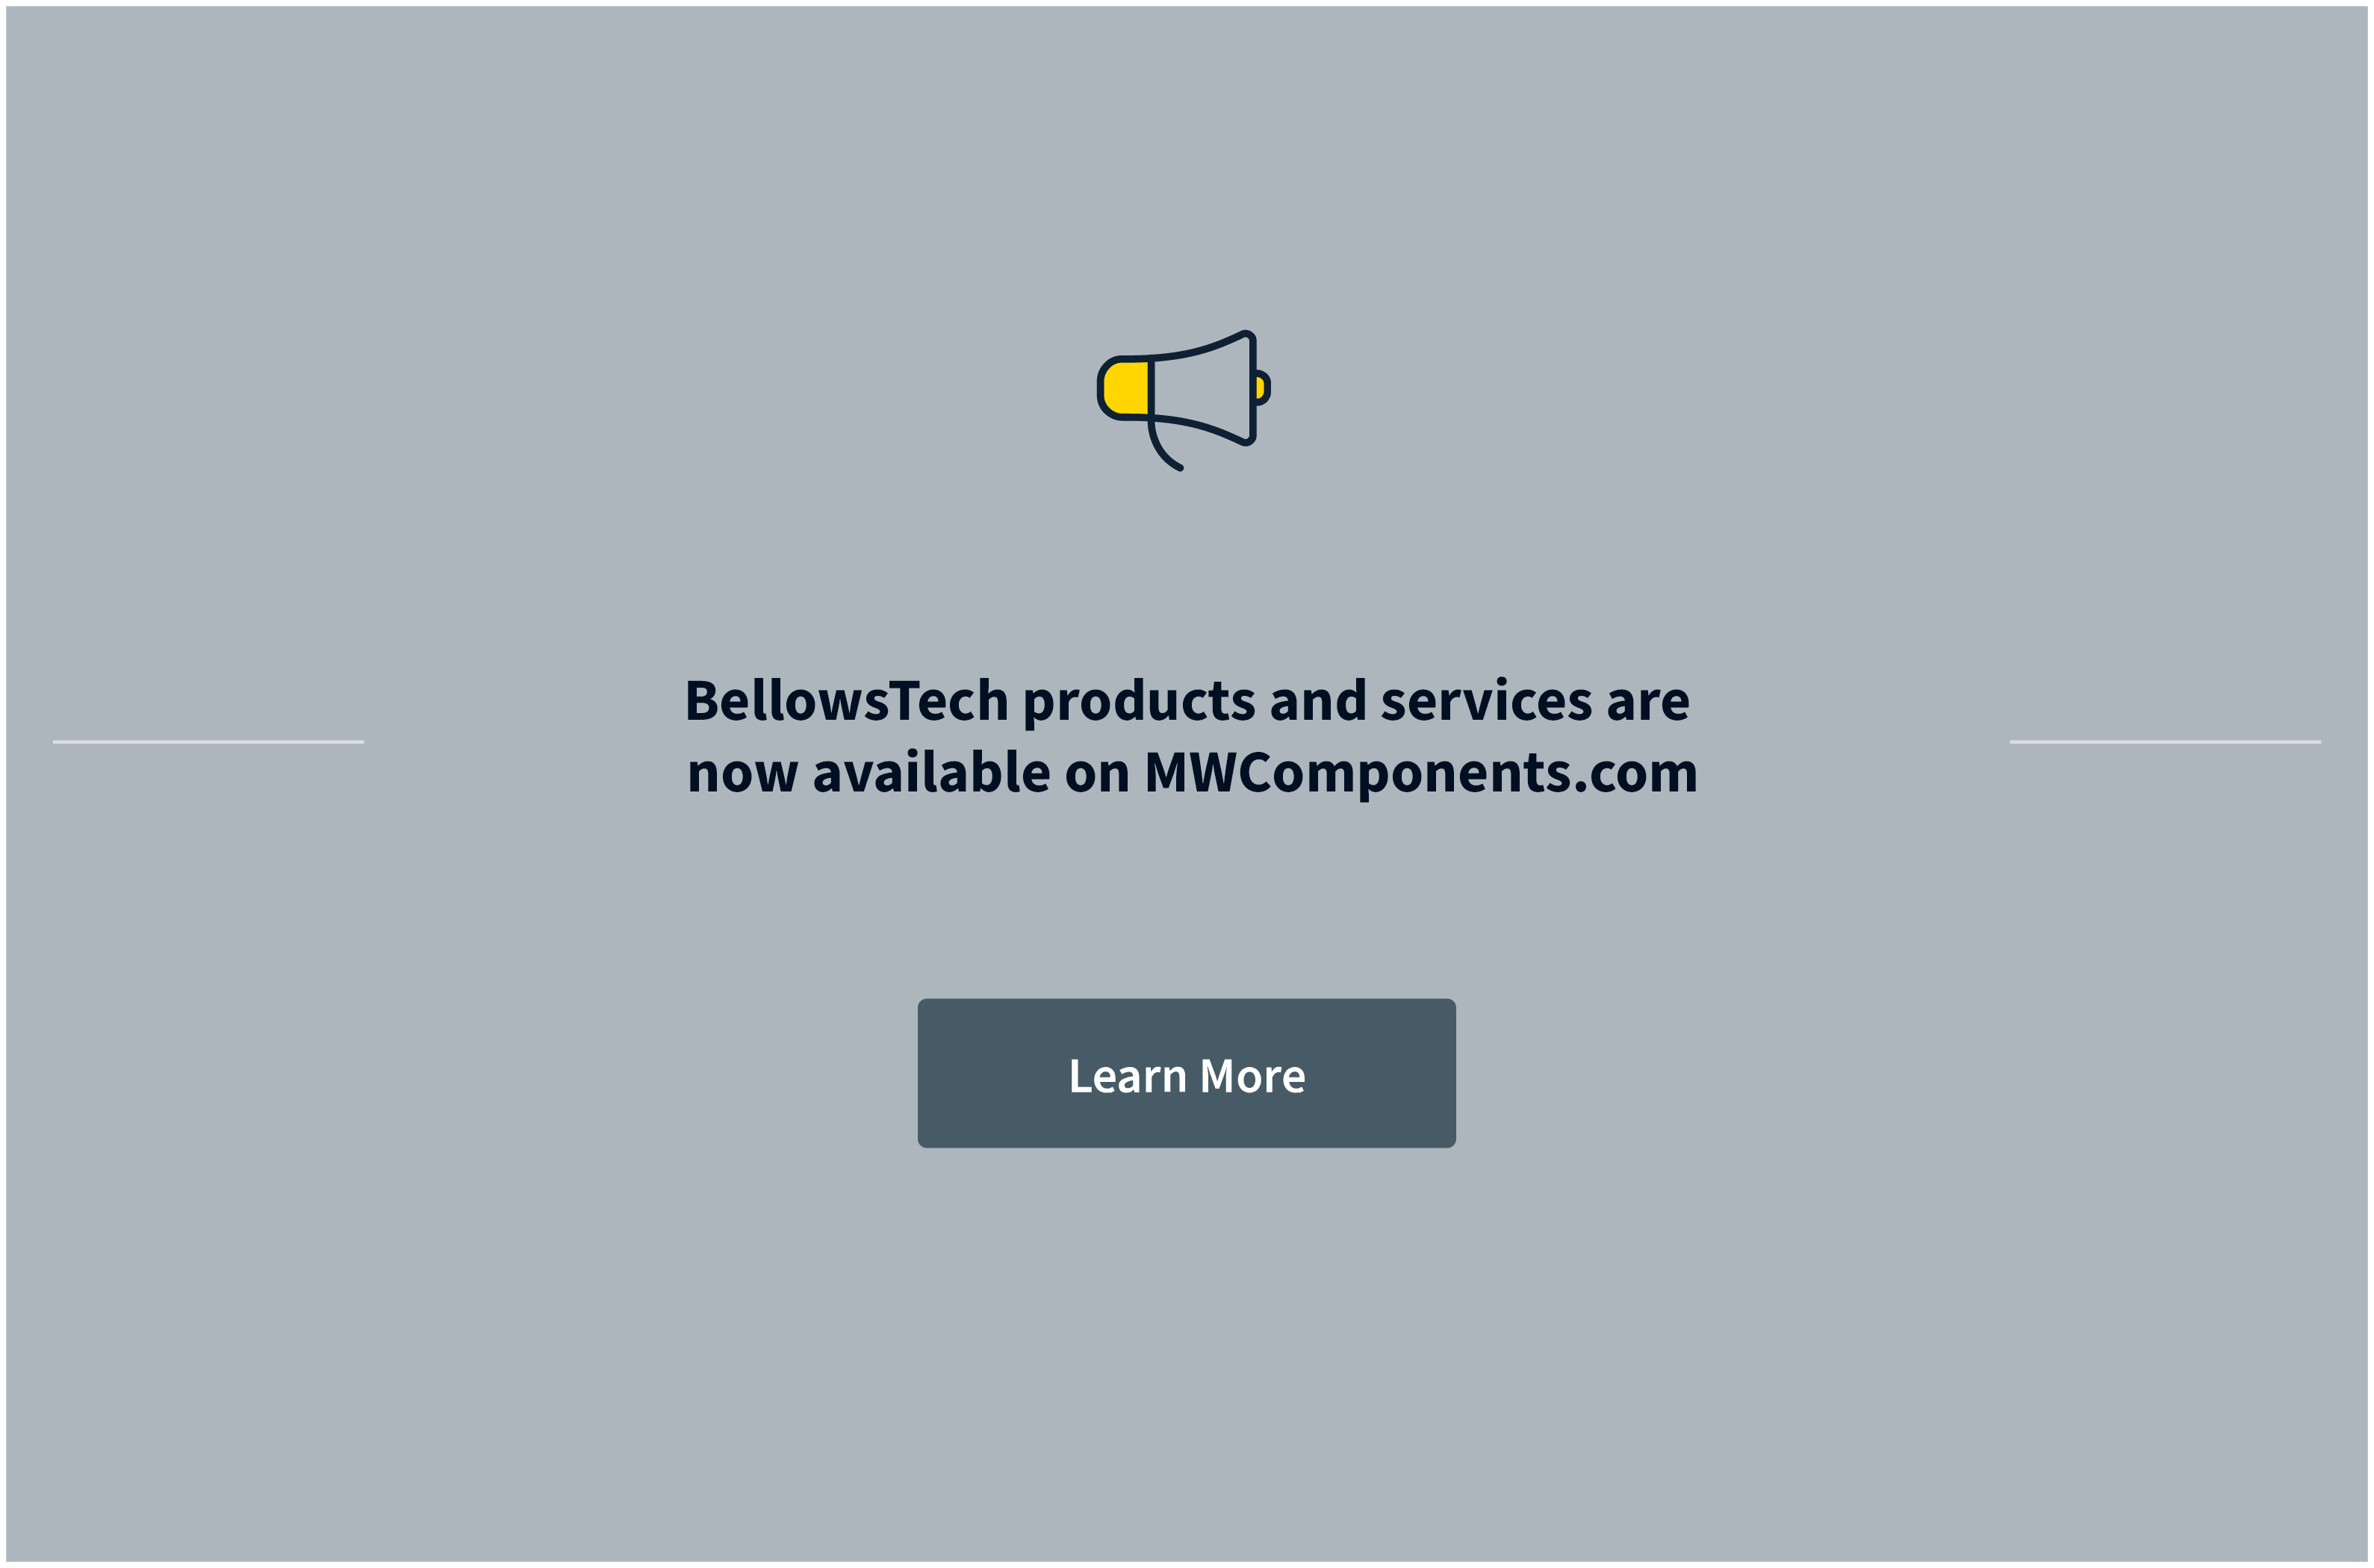 BellowsTech is now a part of MW Components